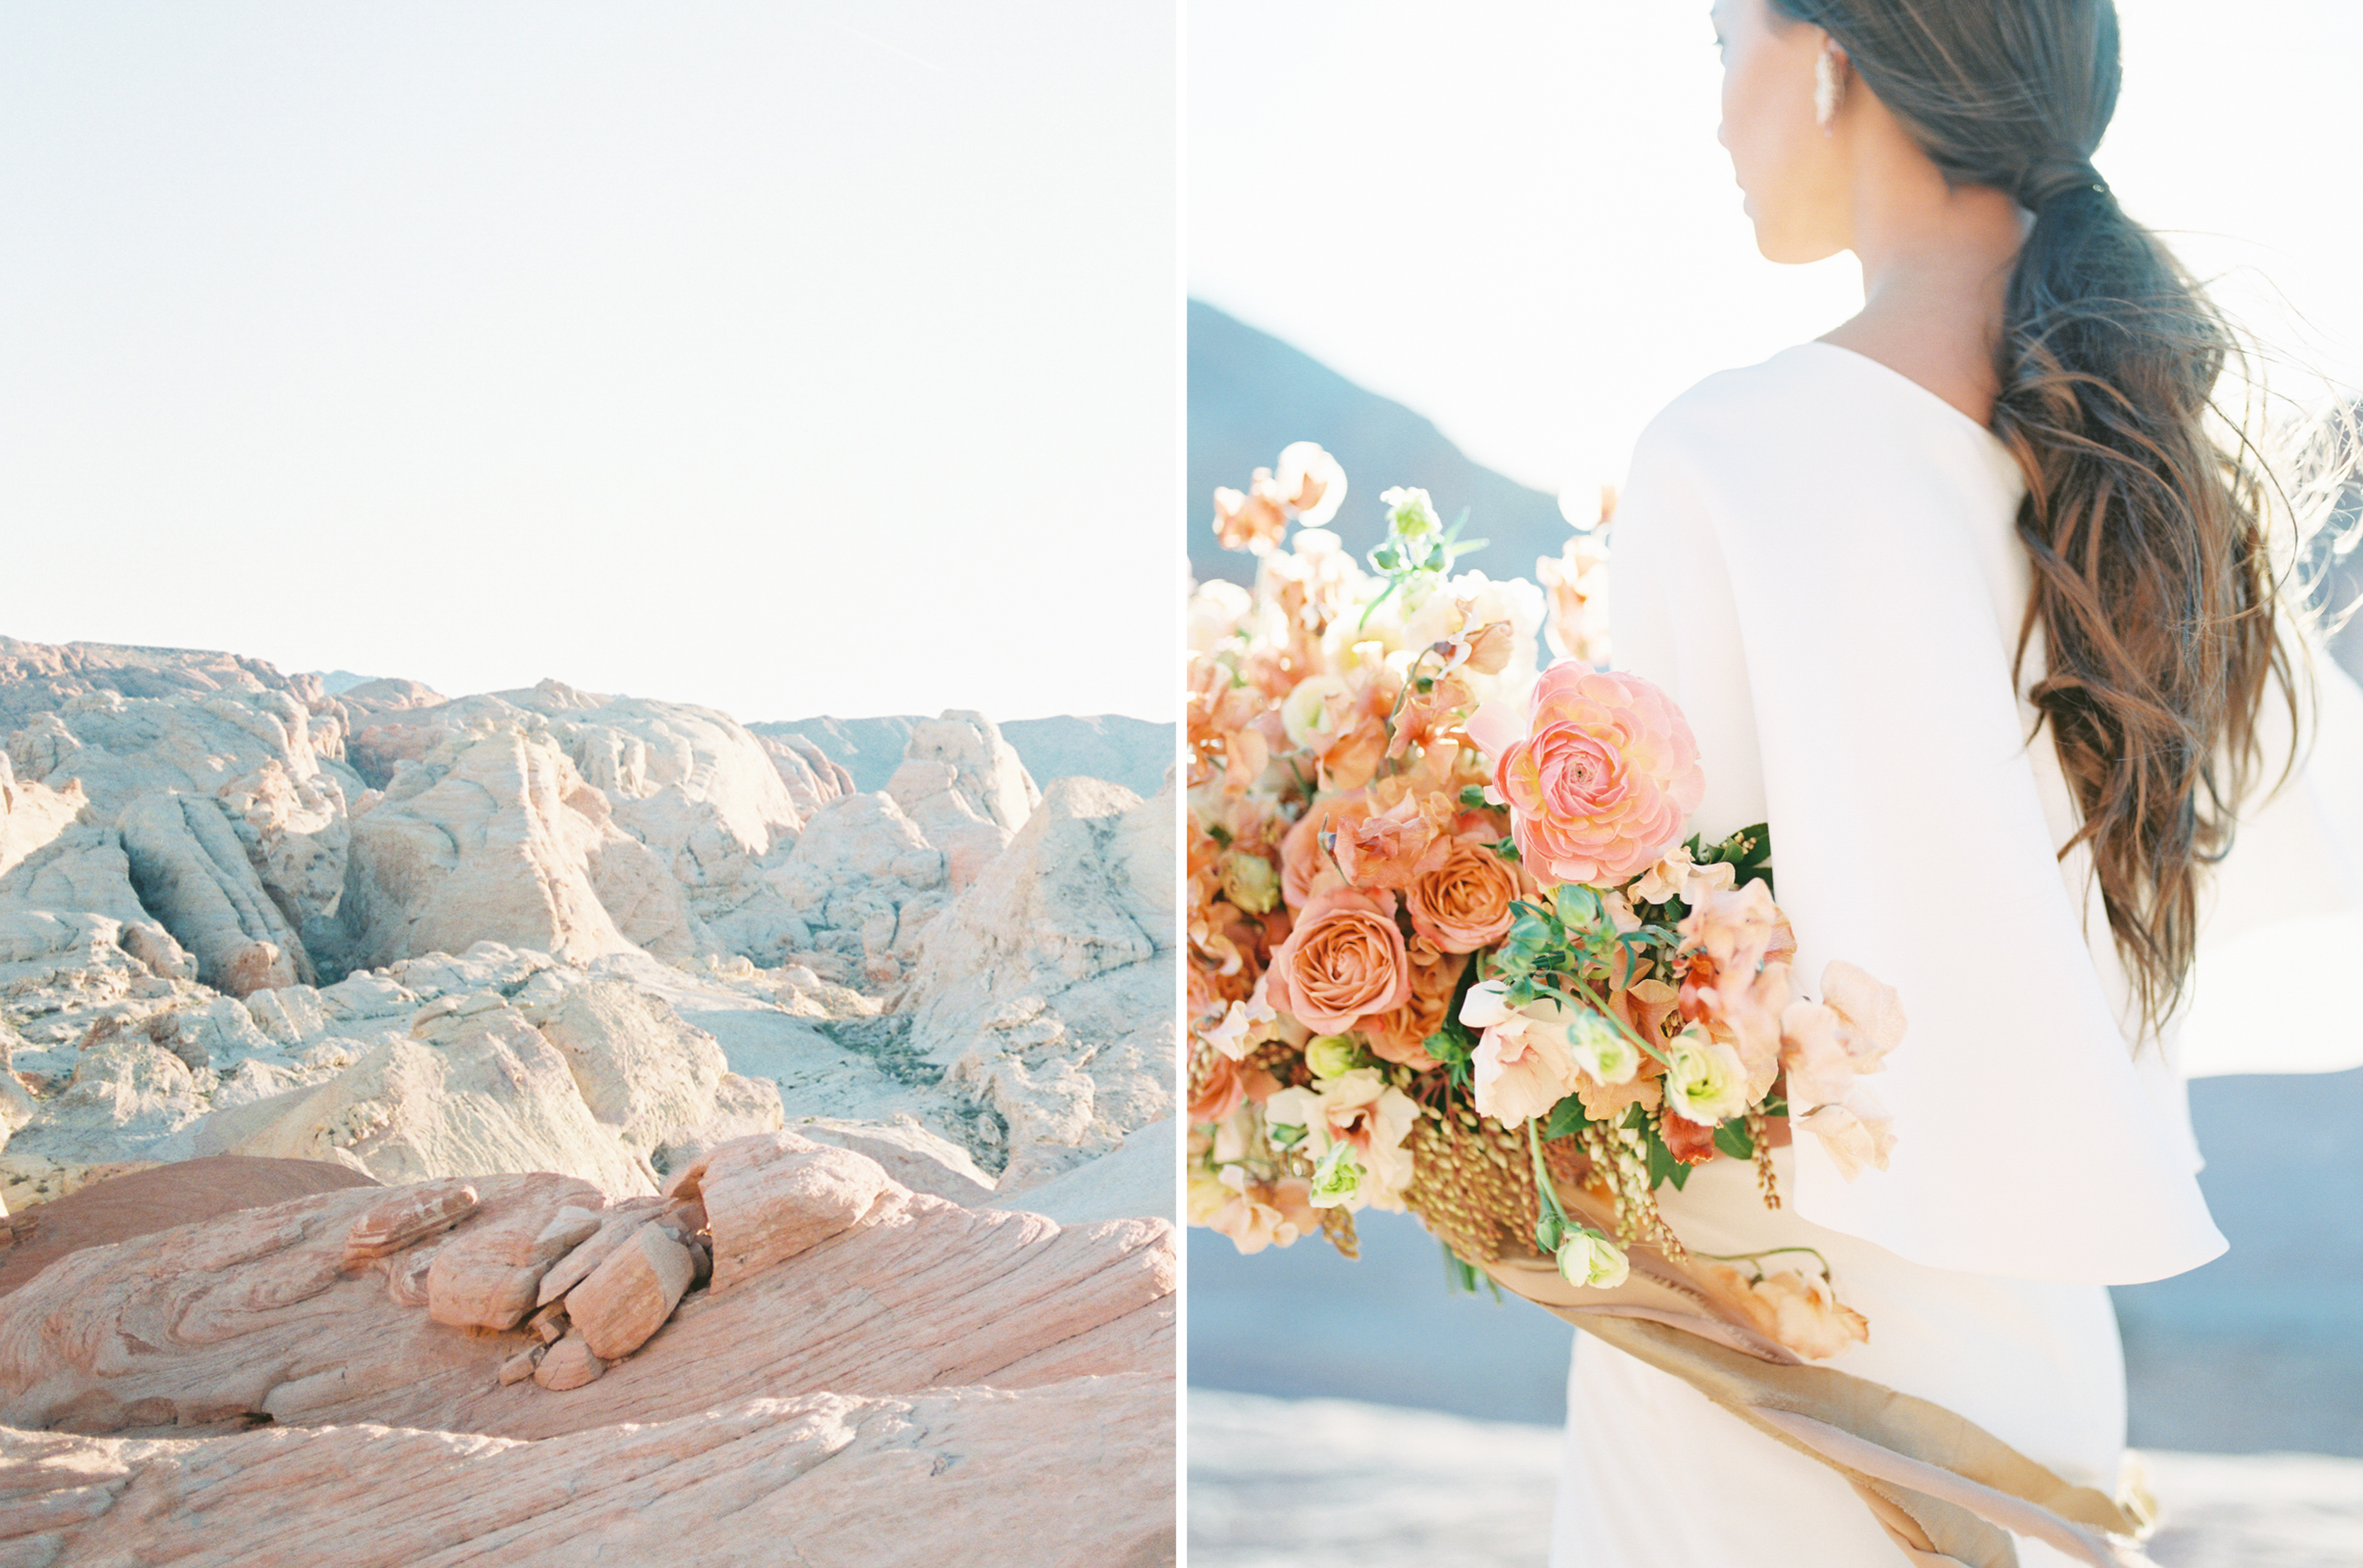 AKP_Desert_Wedding_Bridal_Shoot_Film_Fine_Art_Wedding_Photographer_Los_Angeles-13.jpg